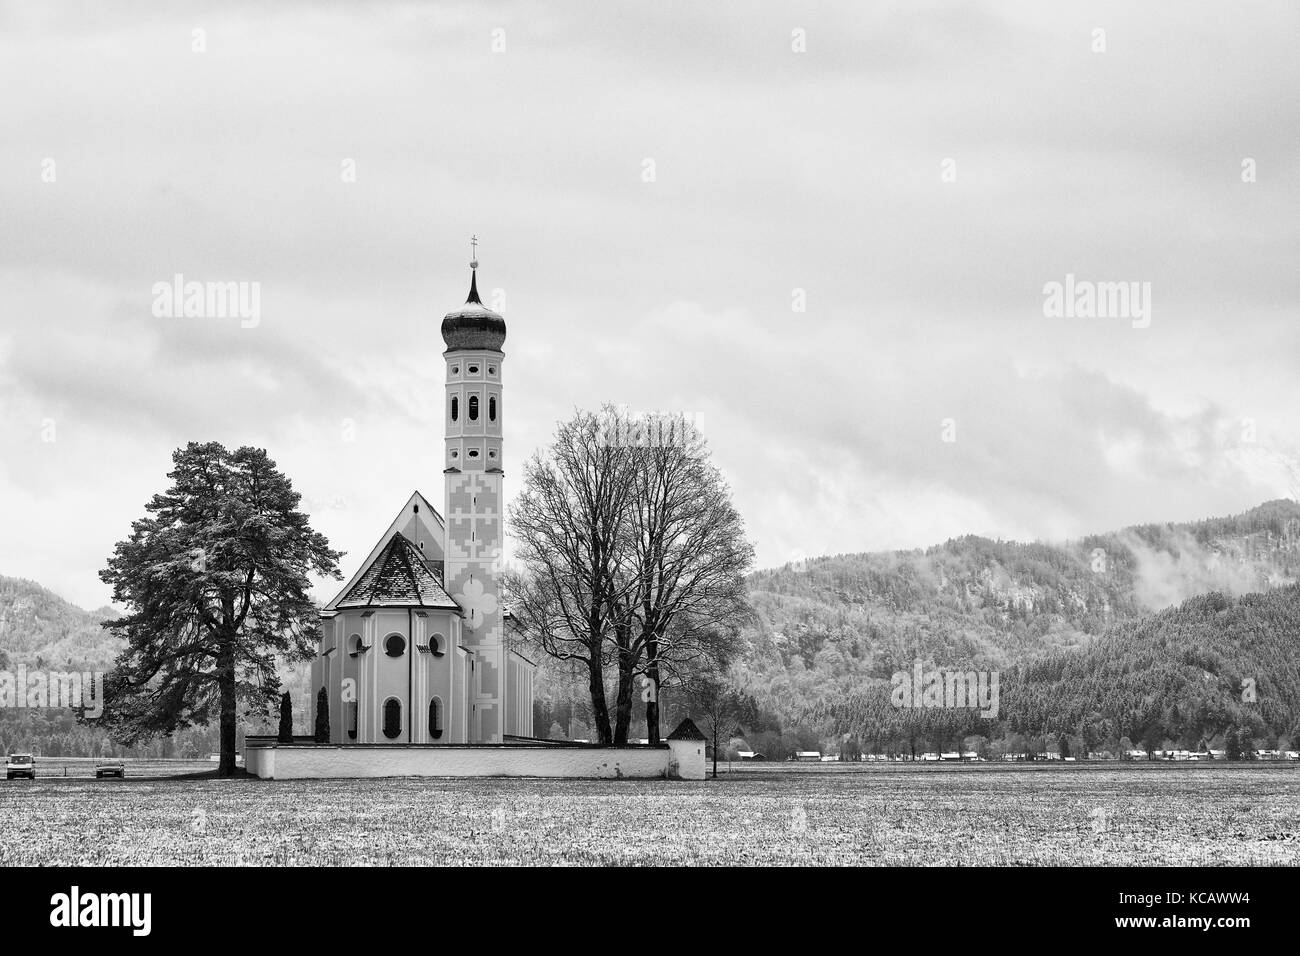 Old church with high bell tower and graveyard bellow mountains.  April weather. Wet spring snow in already fresh - Stock Image